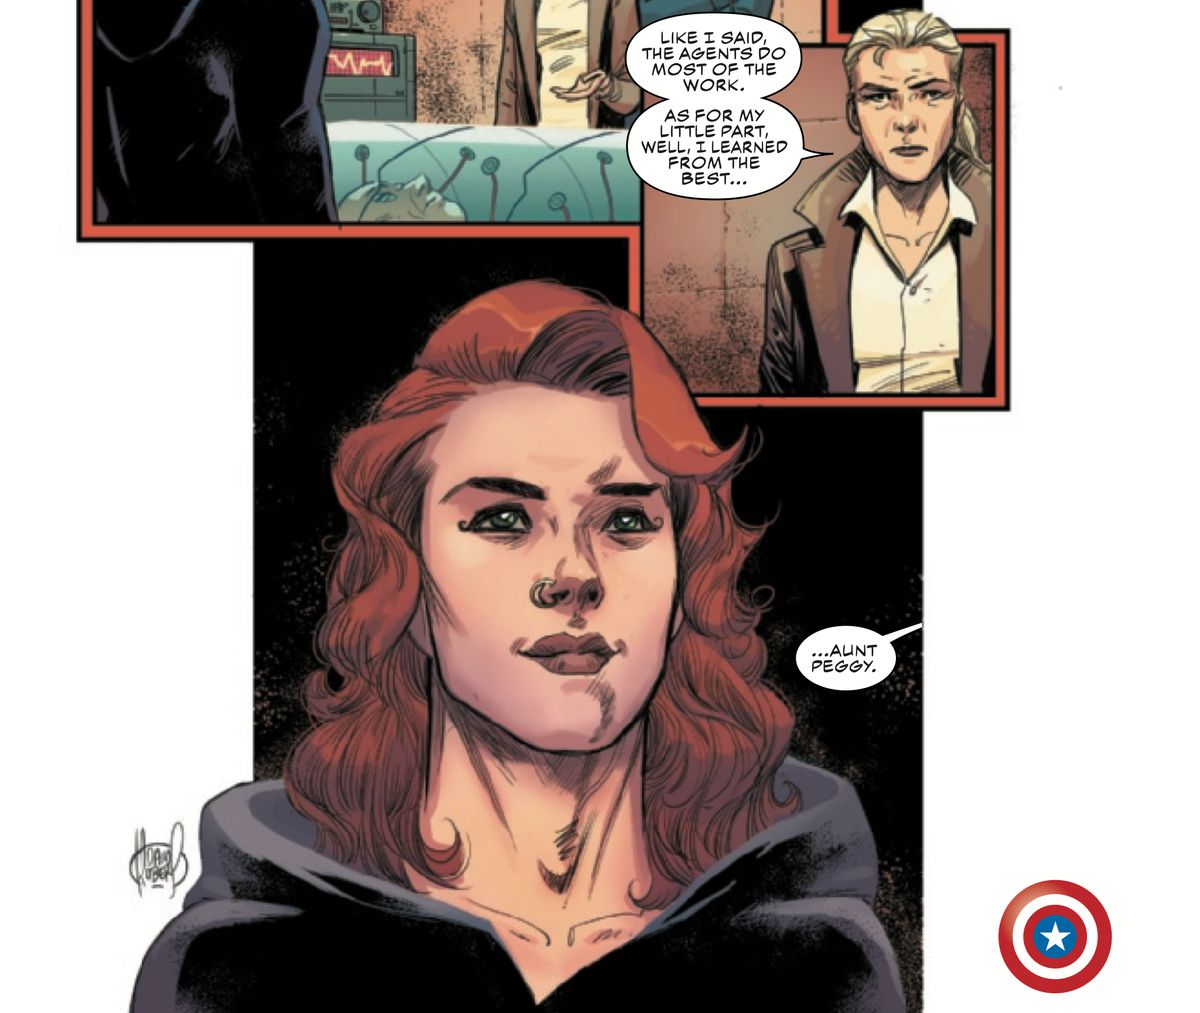 Sharon Carter says that she learned from the best, while introducing her miraculously alive and youthful aunt, WWII operative Peggy Carter.